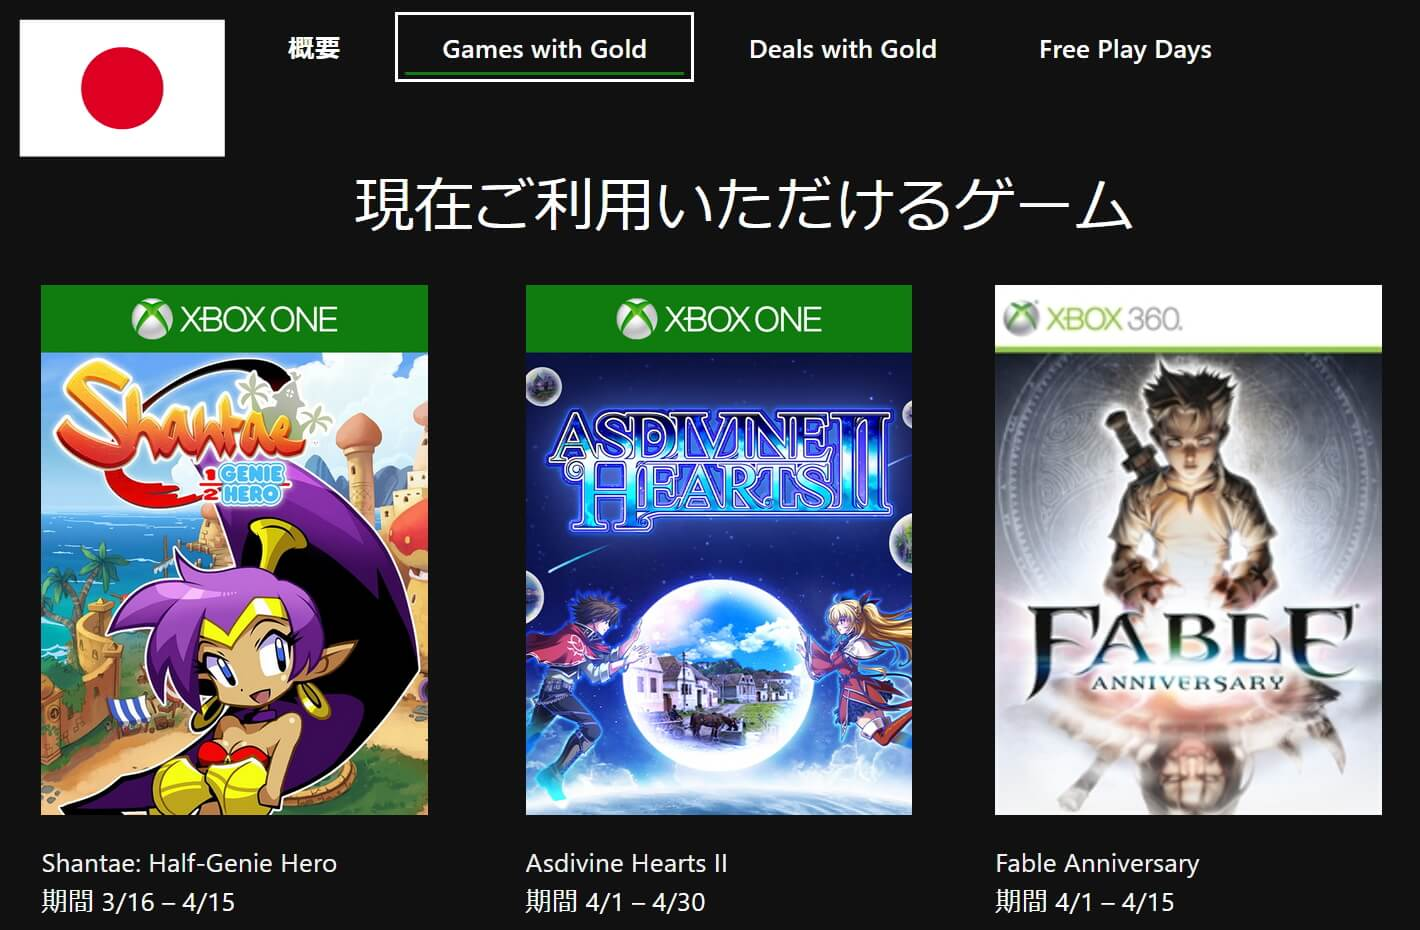 Games with Gold 日米比較 日本